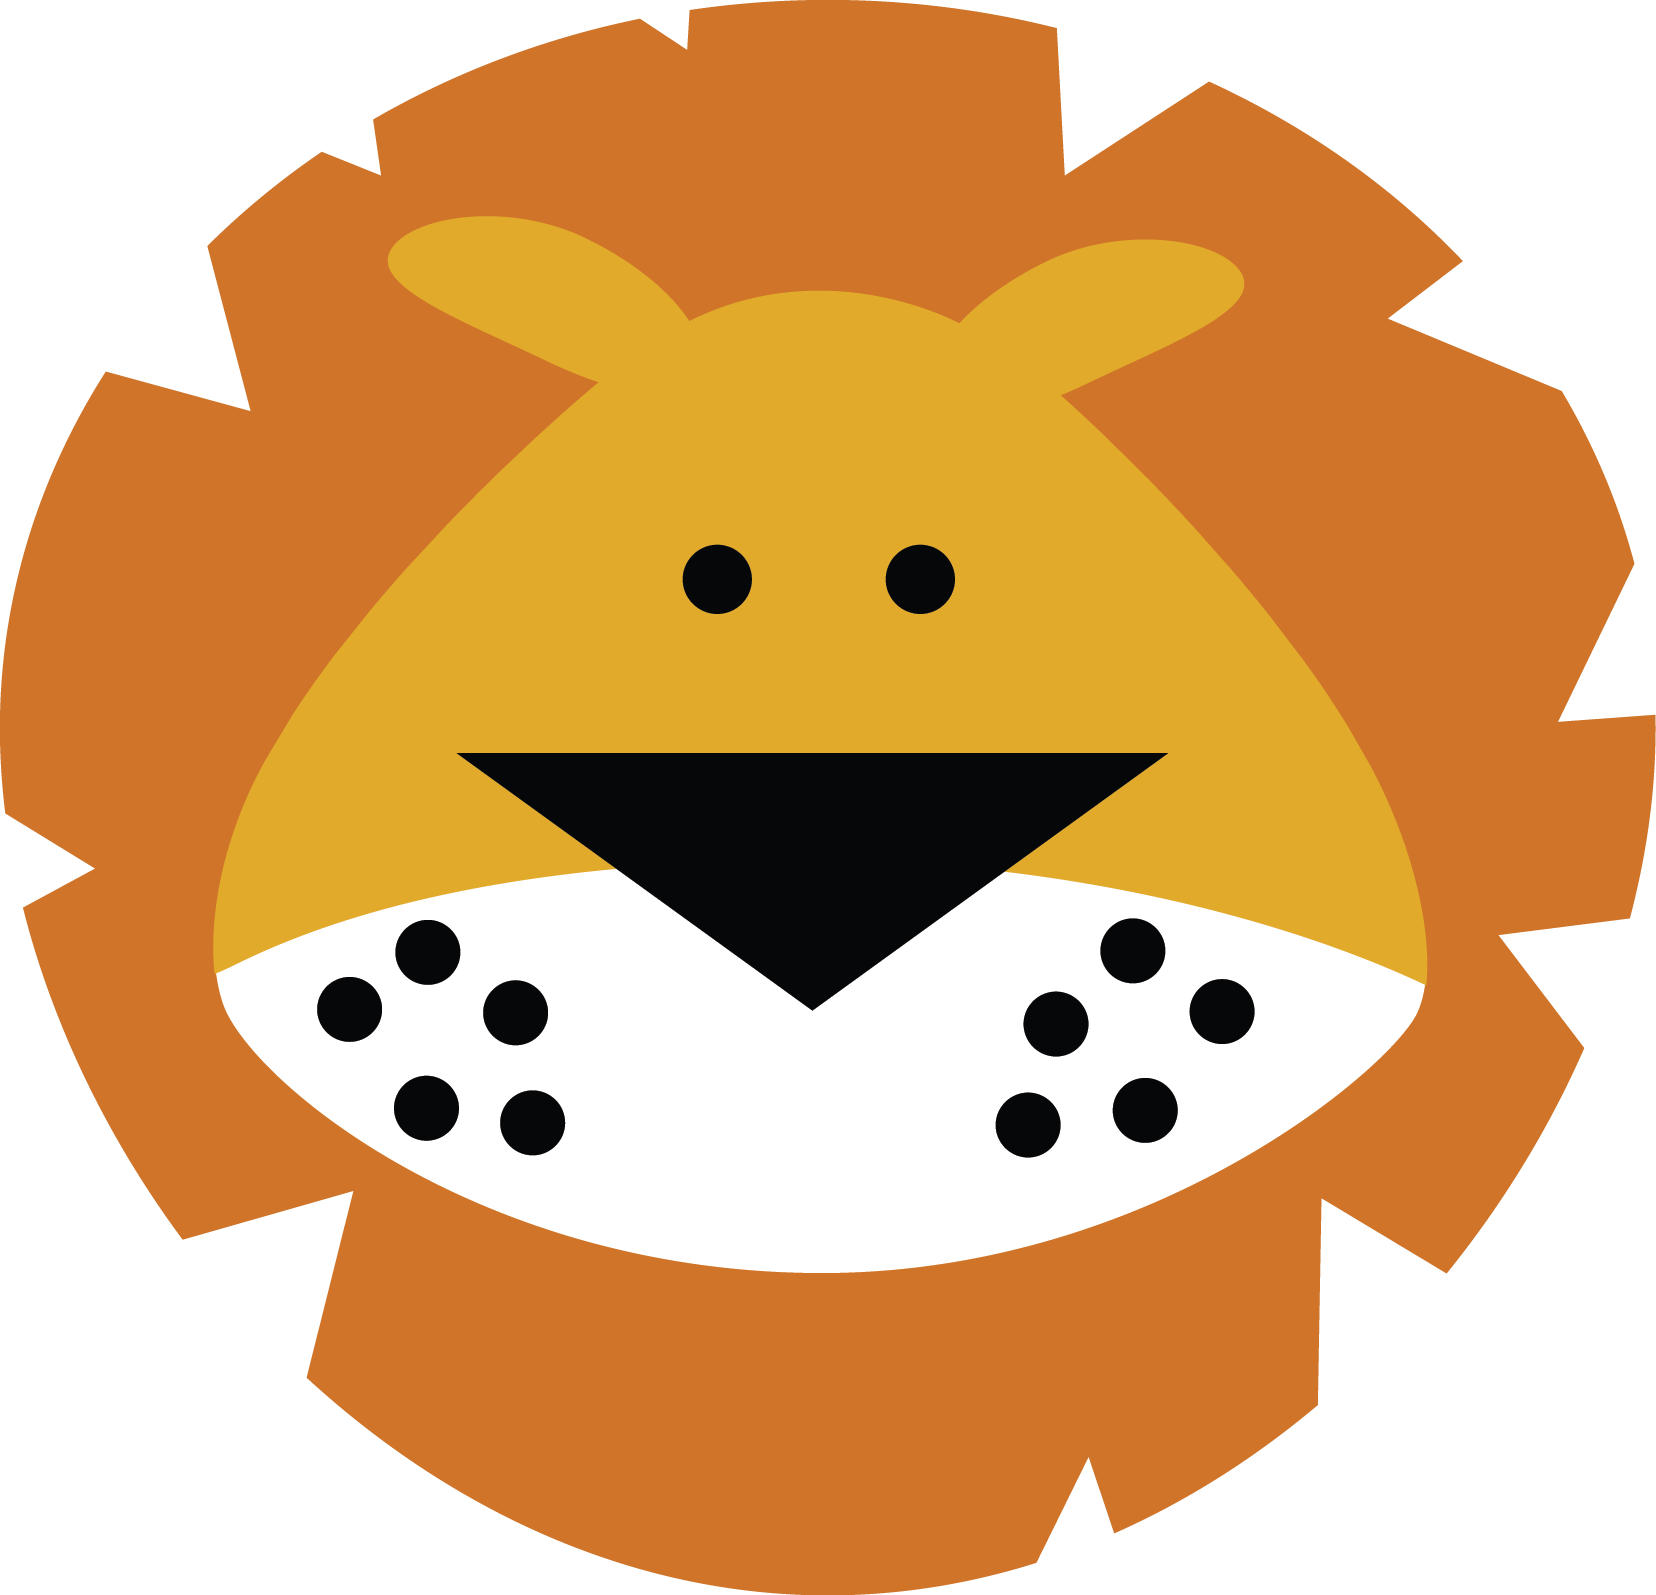 Lion face miss kate. Excited clipart keen